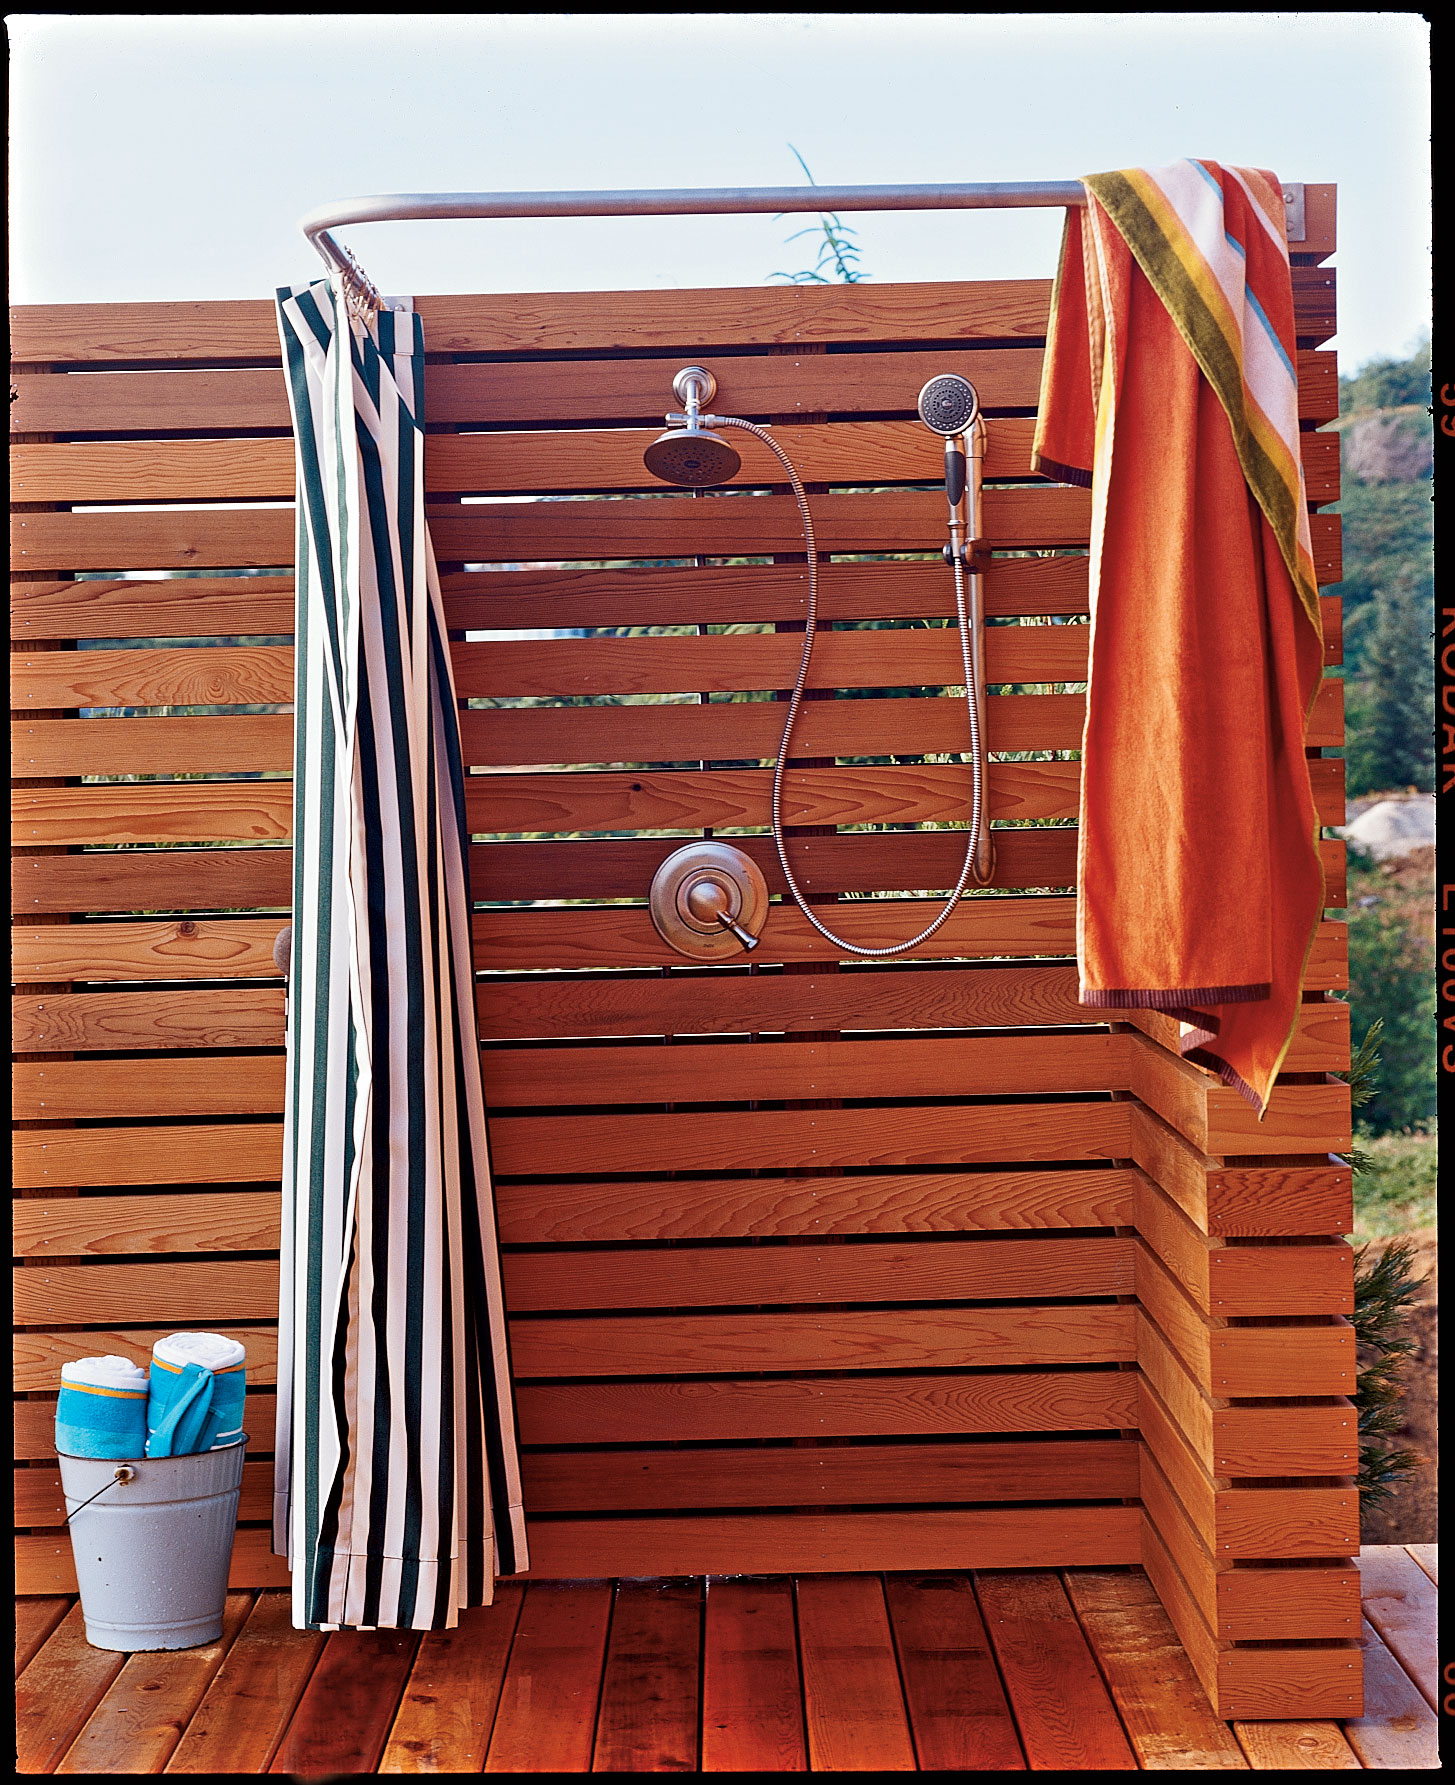 Modern, Wood-Slatted Outdoor Shower Wall